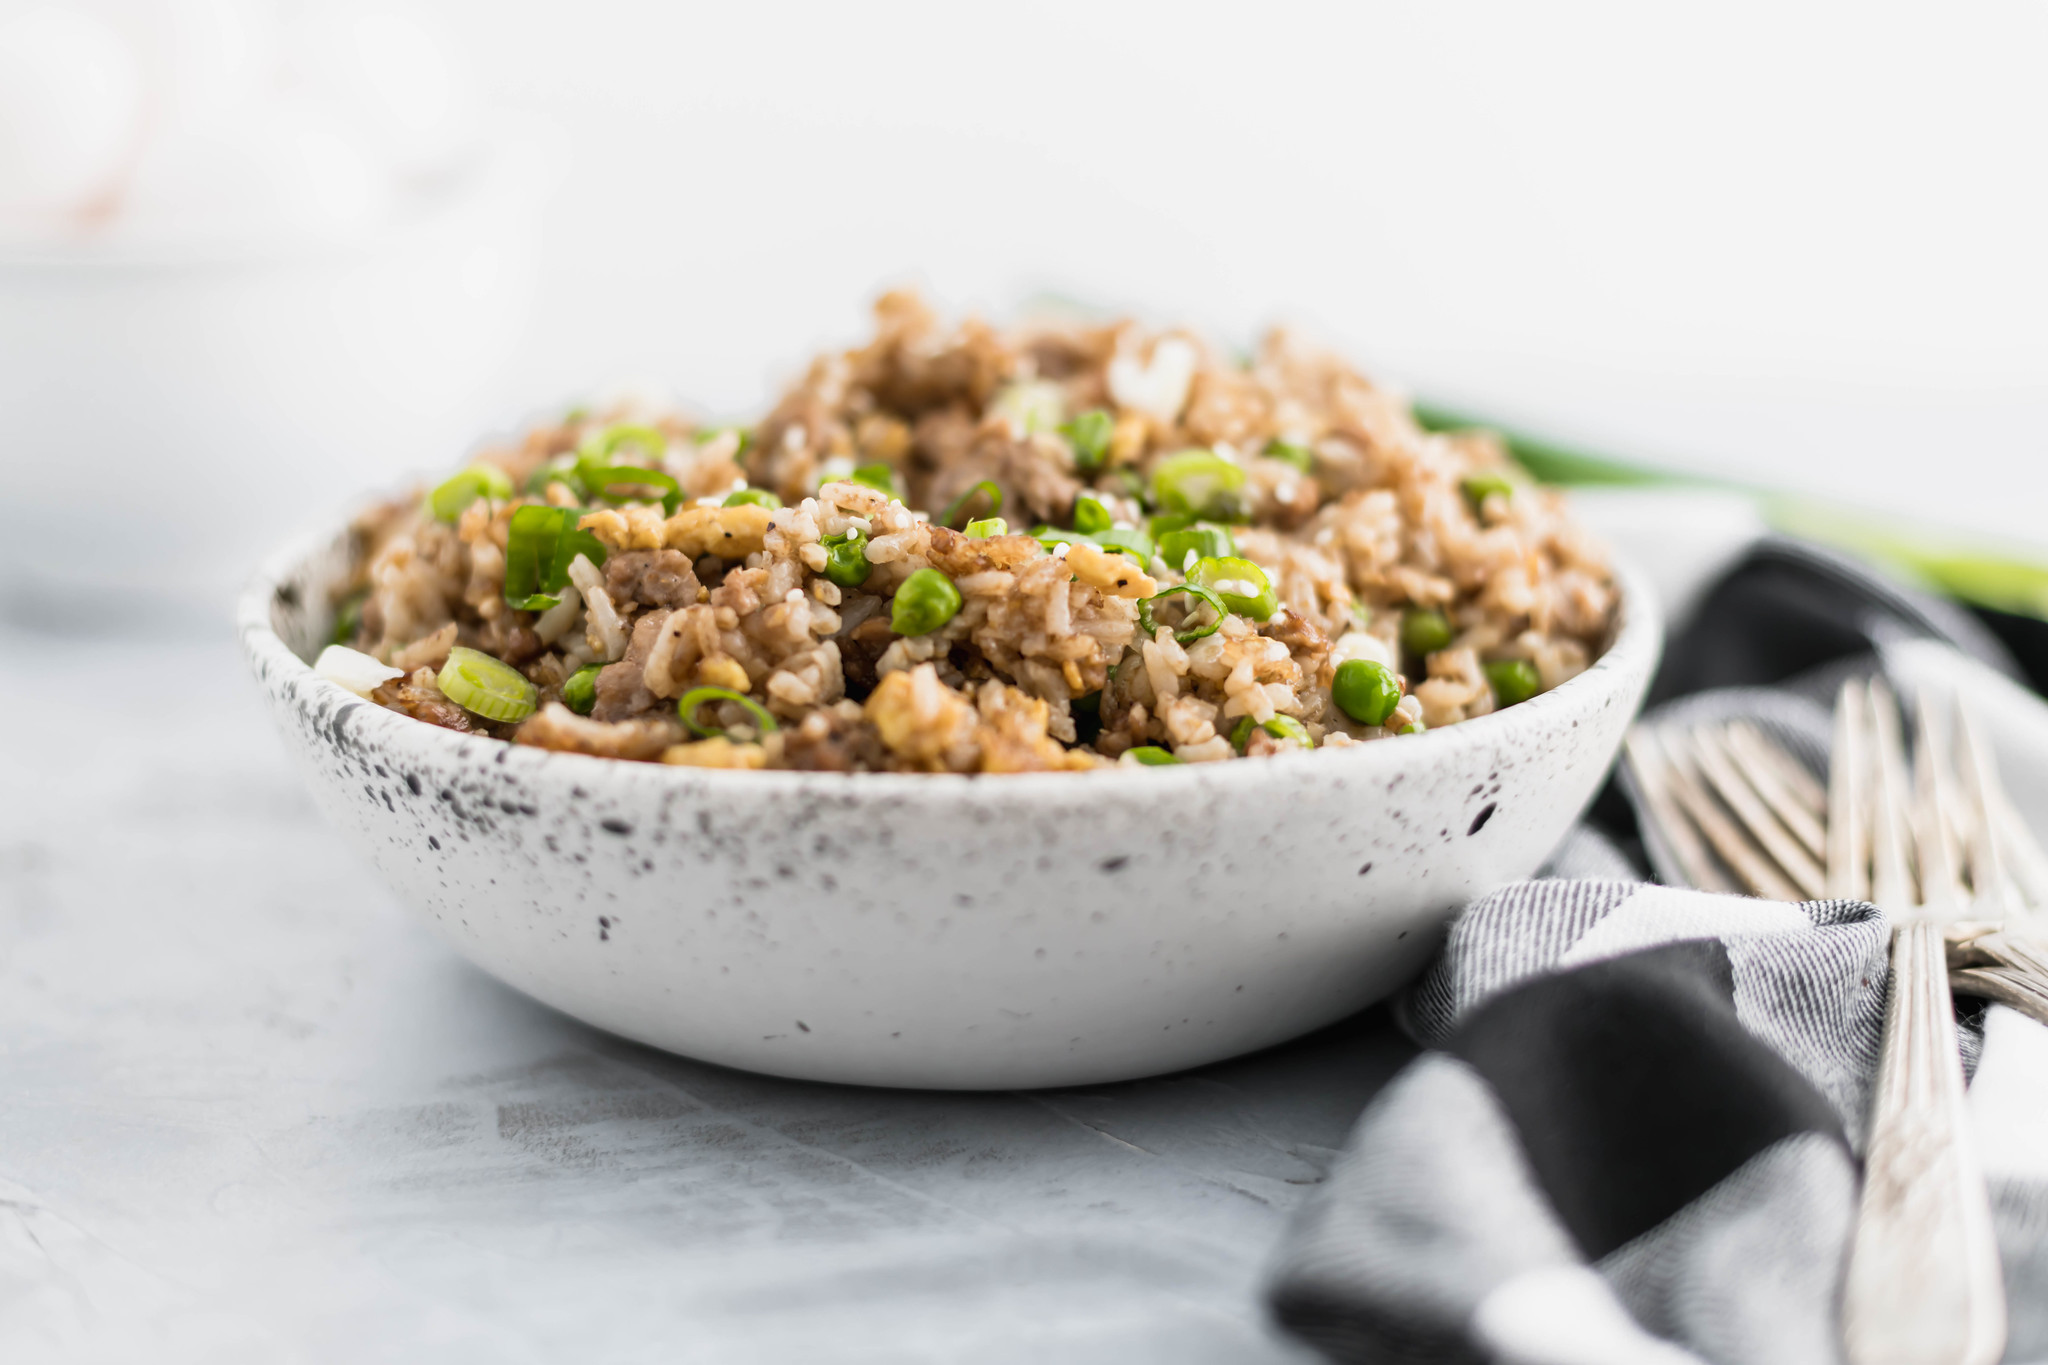 This Chinese takeout inspired Ground Pork Fried Rice is super fast to throw together for lunch or dinner. A great use of leftover rice.